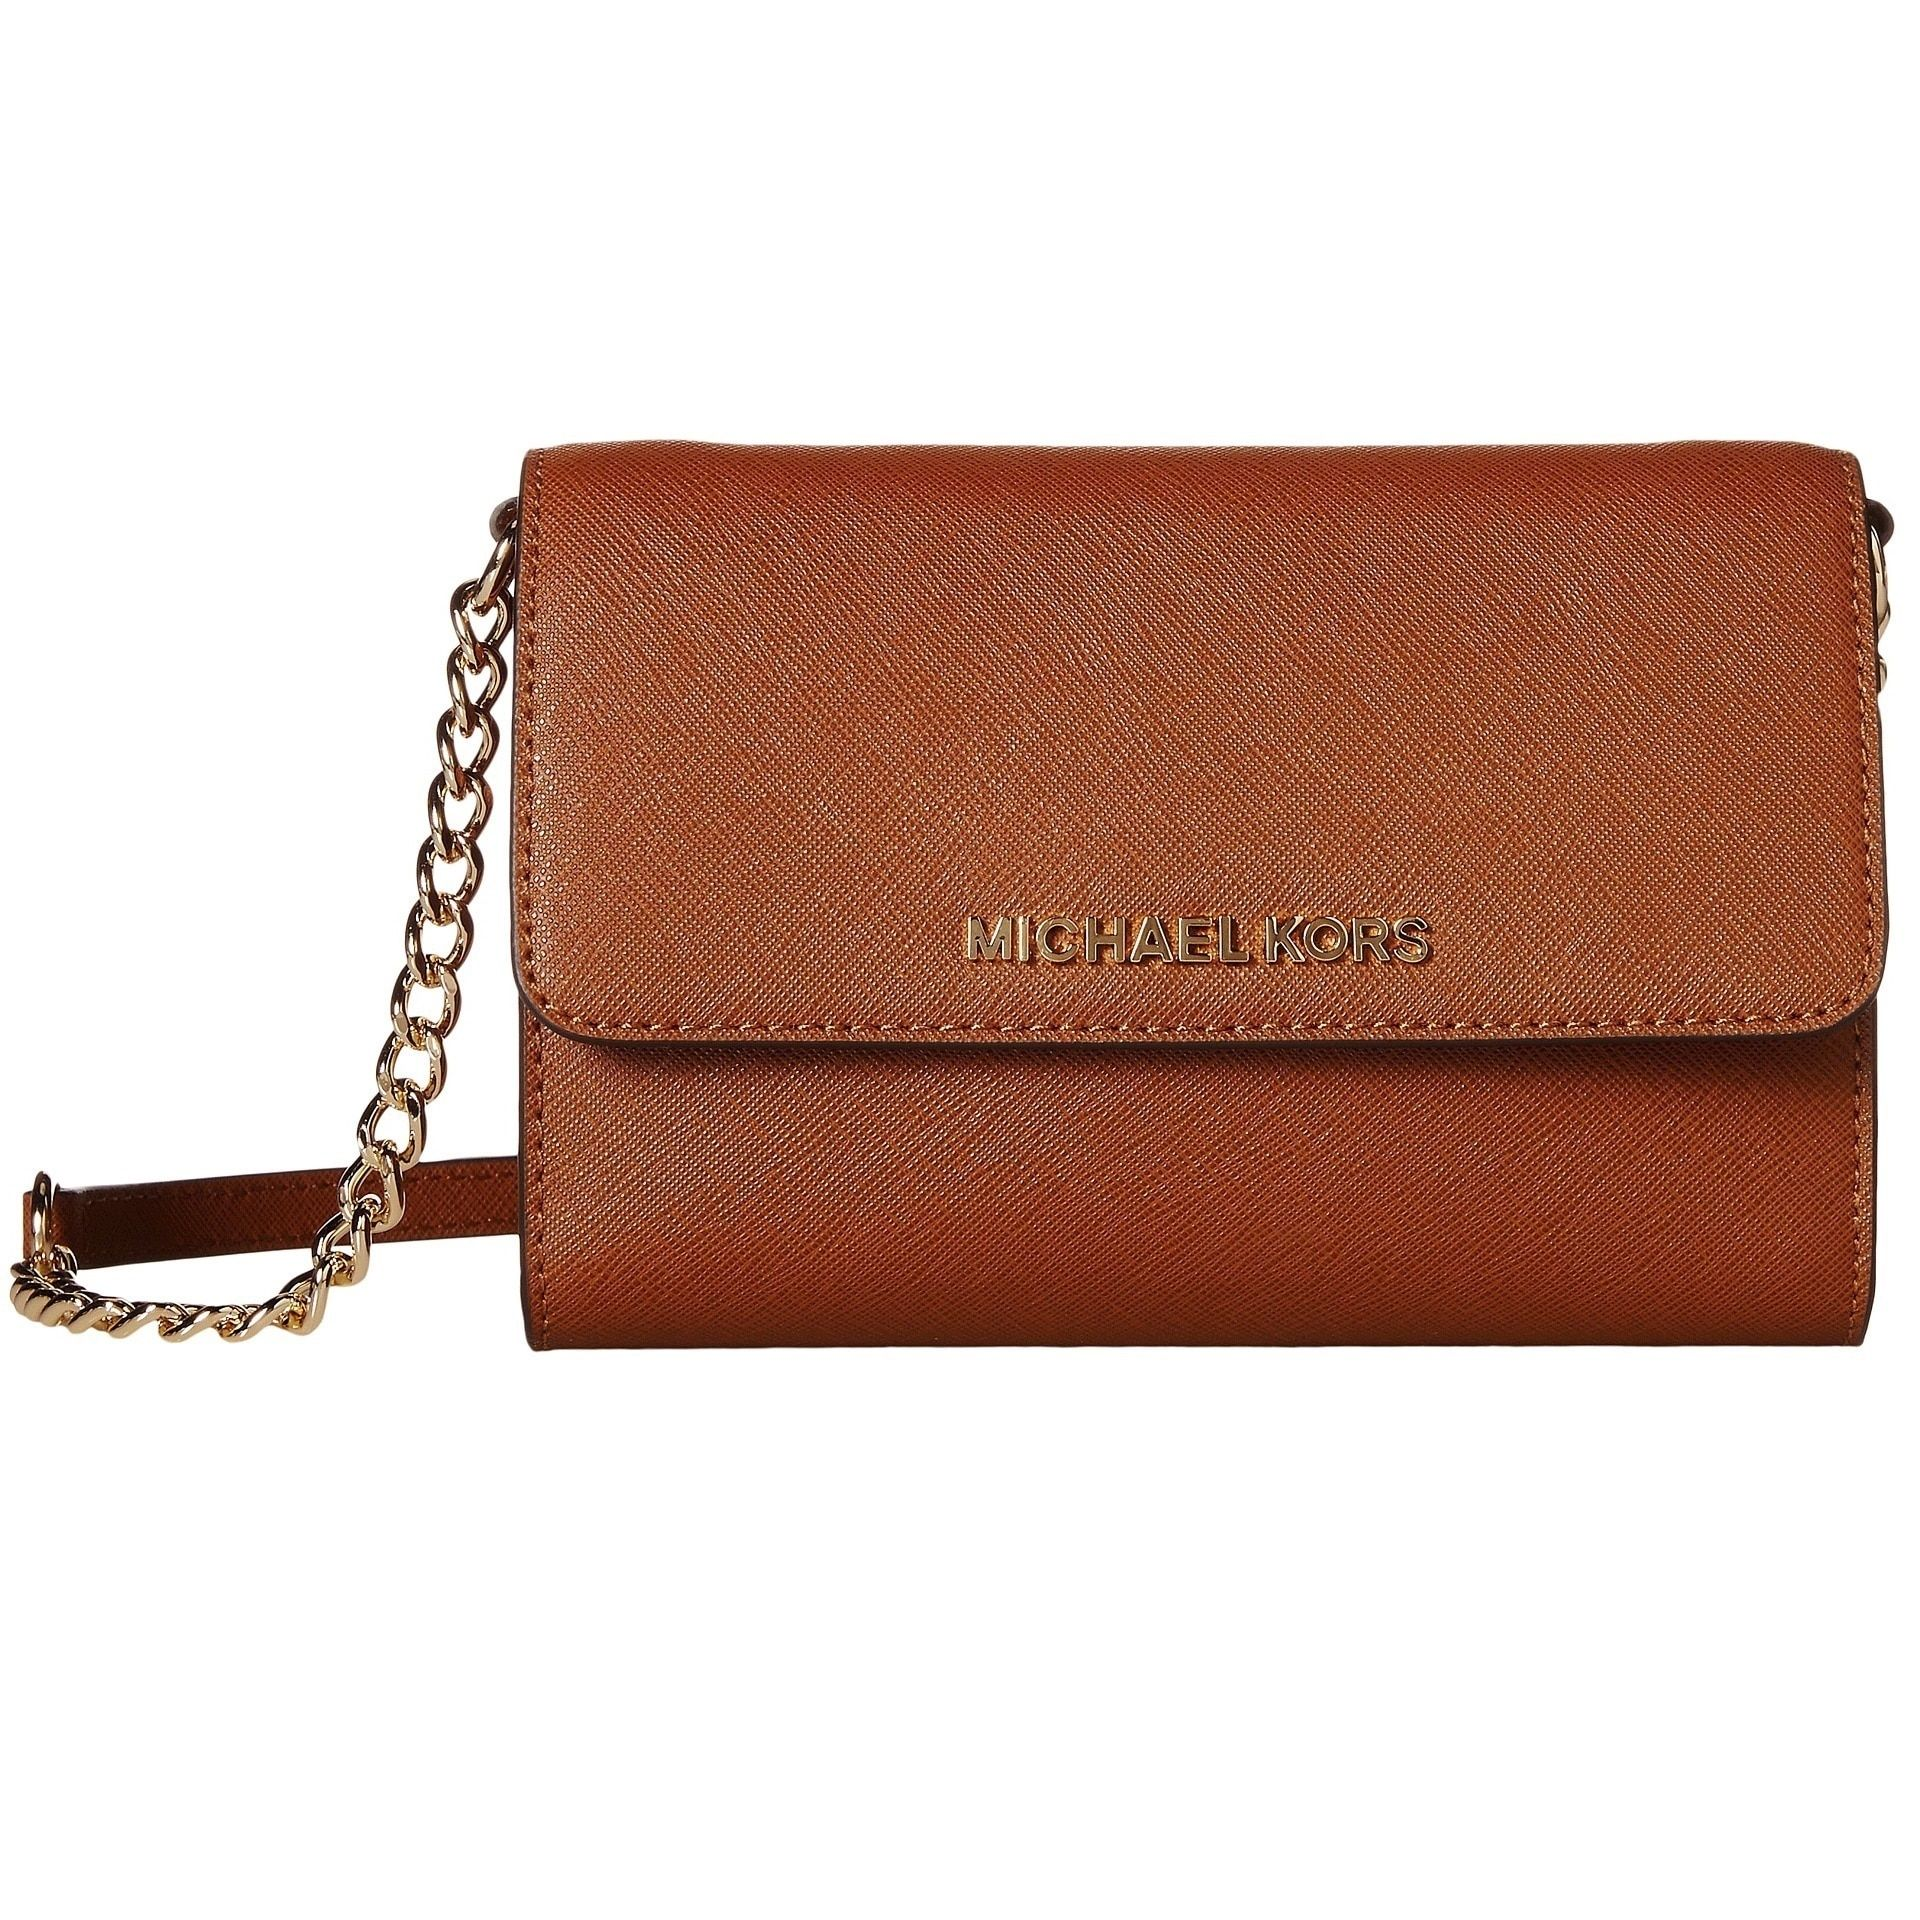 Michael Kors Jet Set Travel Phone Crossbody Handbag